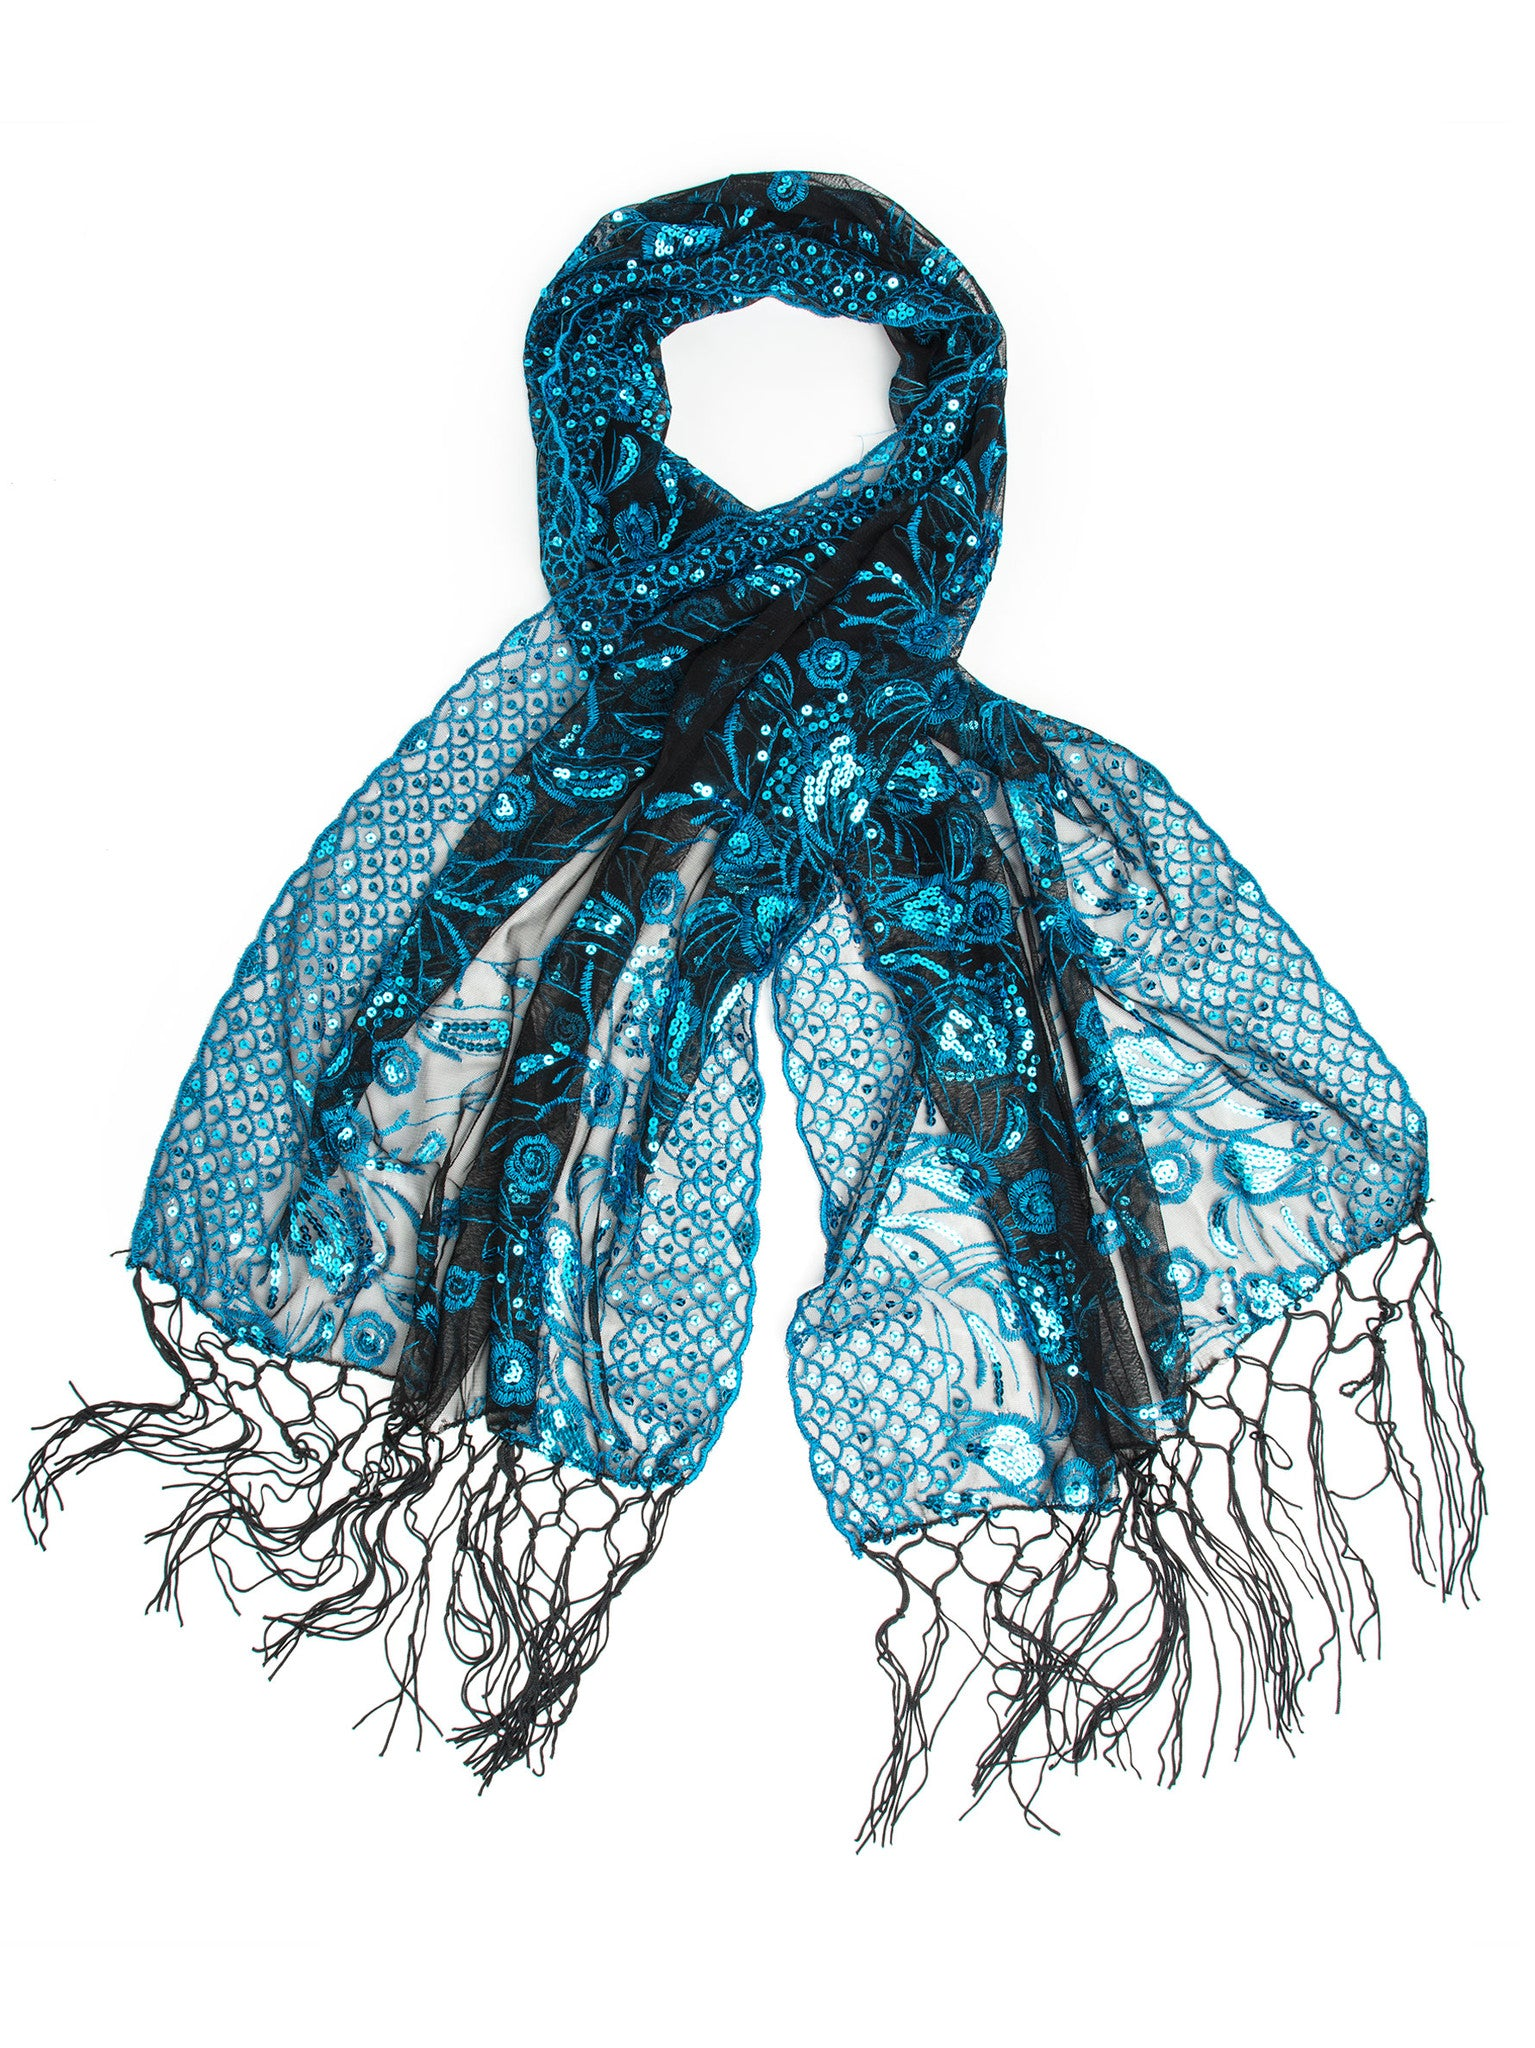 Scarves - Amaryllis Shawl, Vintage Inspired Sequin Evening Wrap, Embroidered Sequin Shawl, Scarf -(Turquoise/Black) Bohomonde  - 3